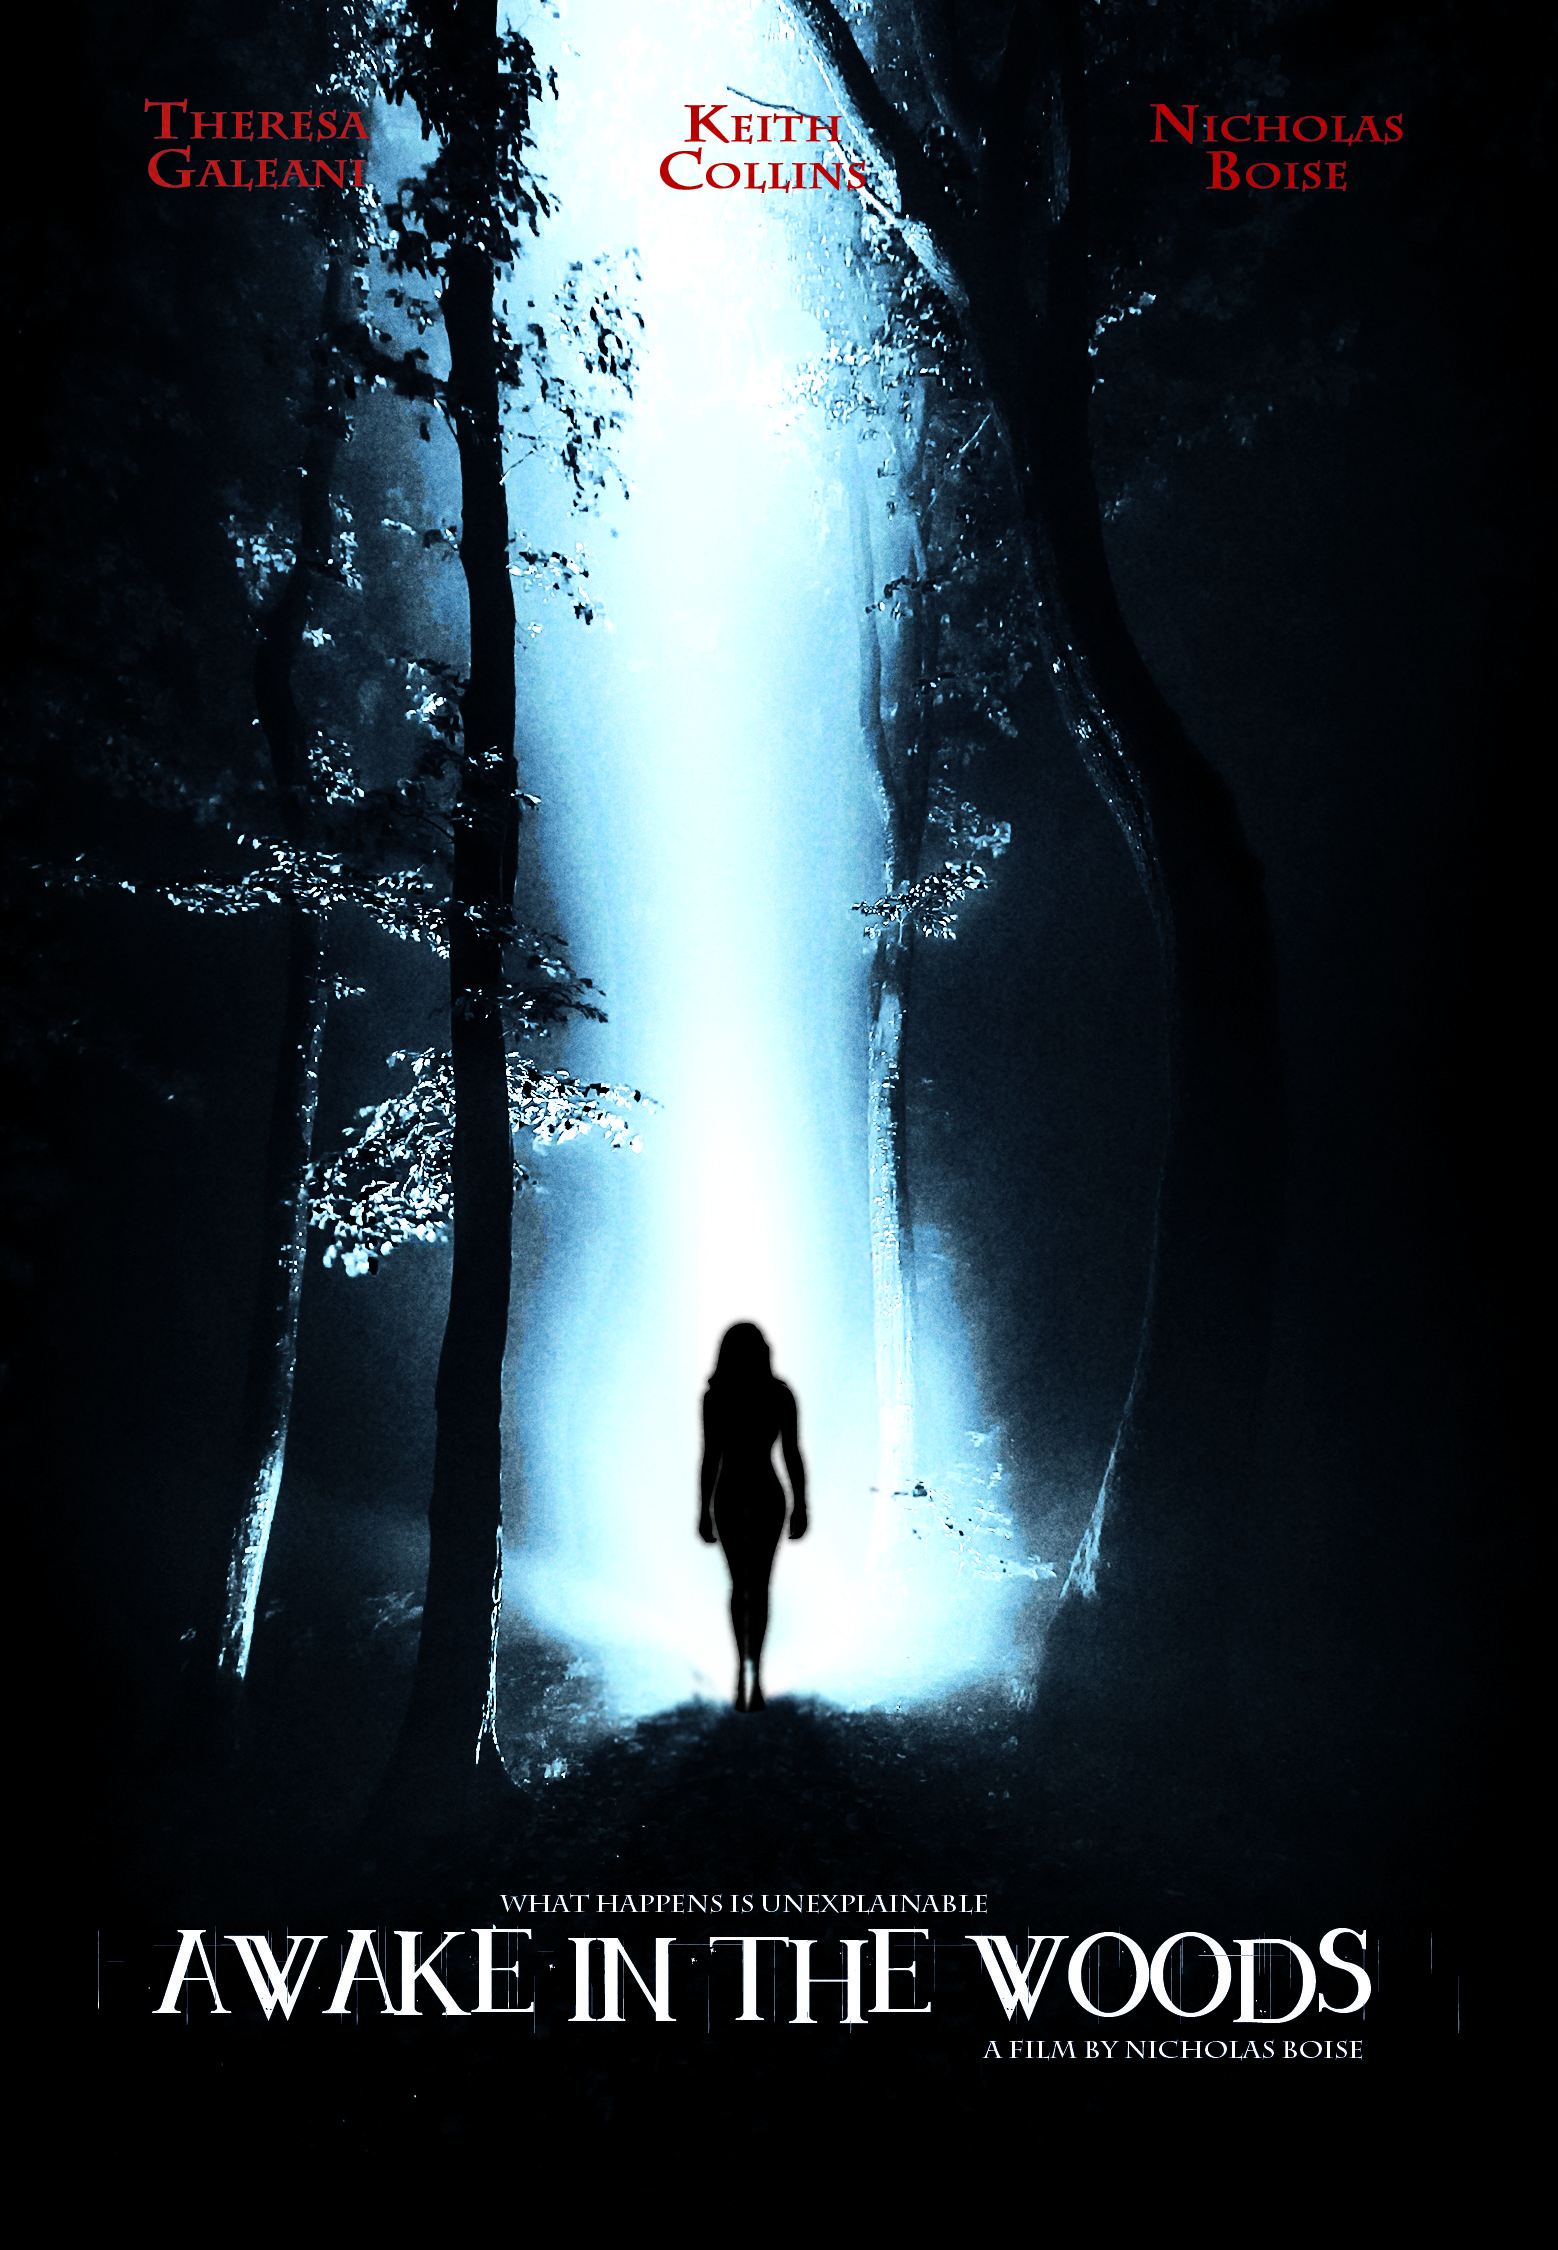 فيلم Awake in the Woods 2015 مترجم